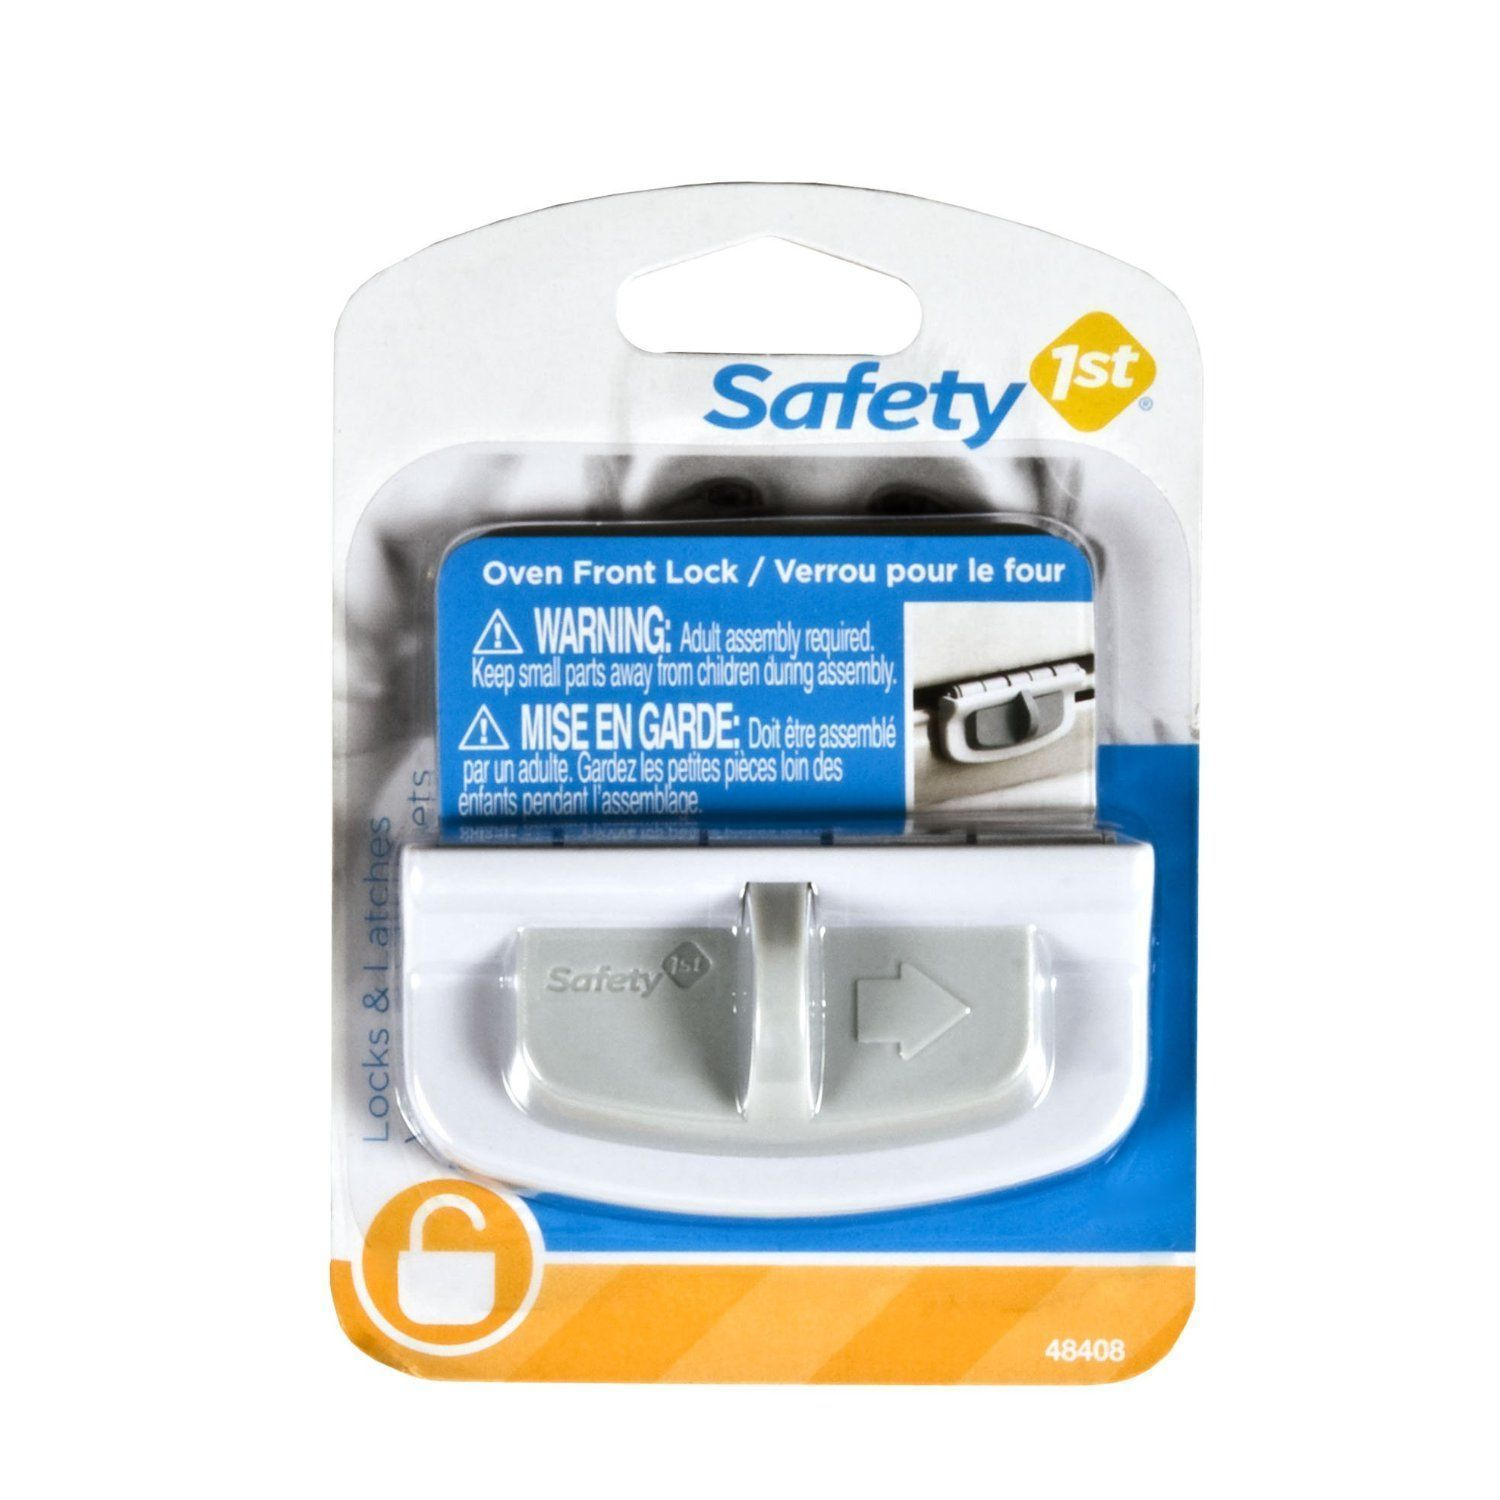 Safety 1st Oven Front Lock Safety Latches Baby Proof